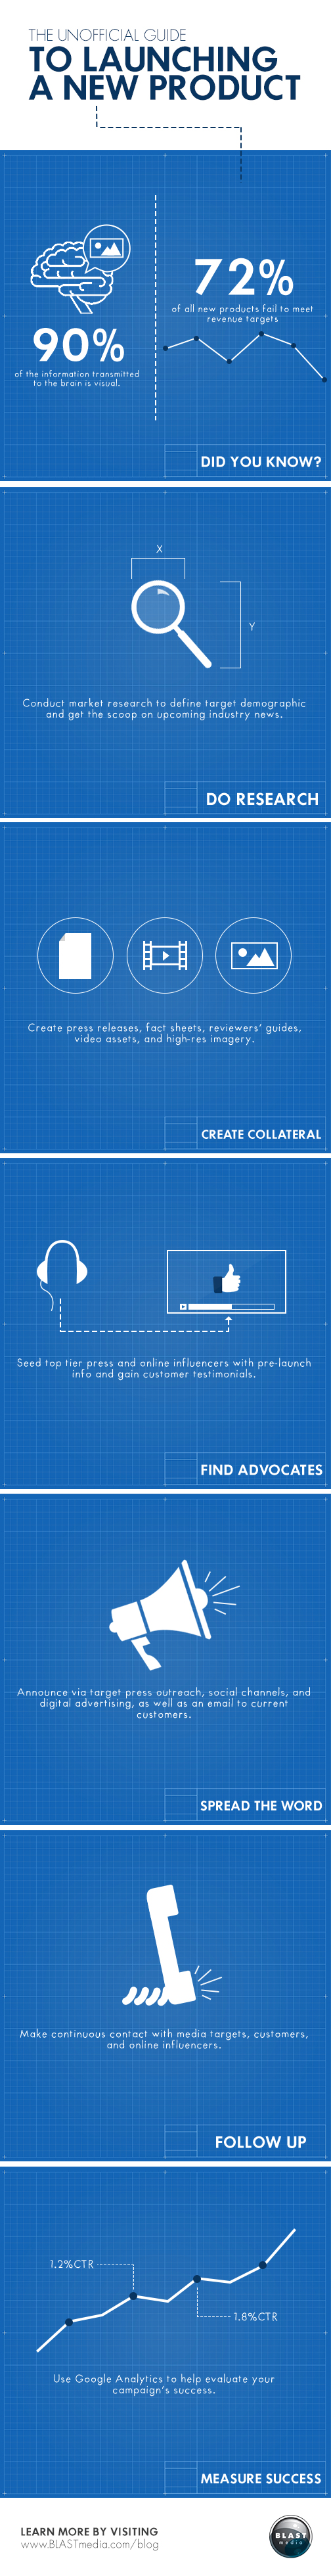 A blueprint for a killer product launch infographic infographic a blueprint for a killer product launch infographic malvernweather Choice Image